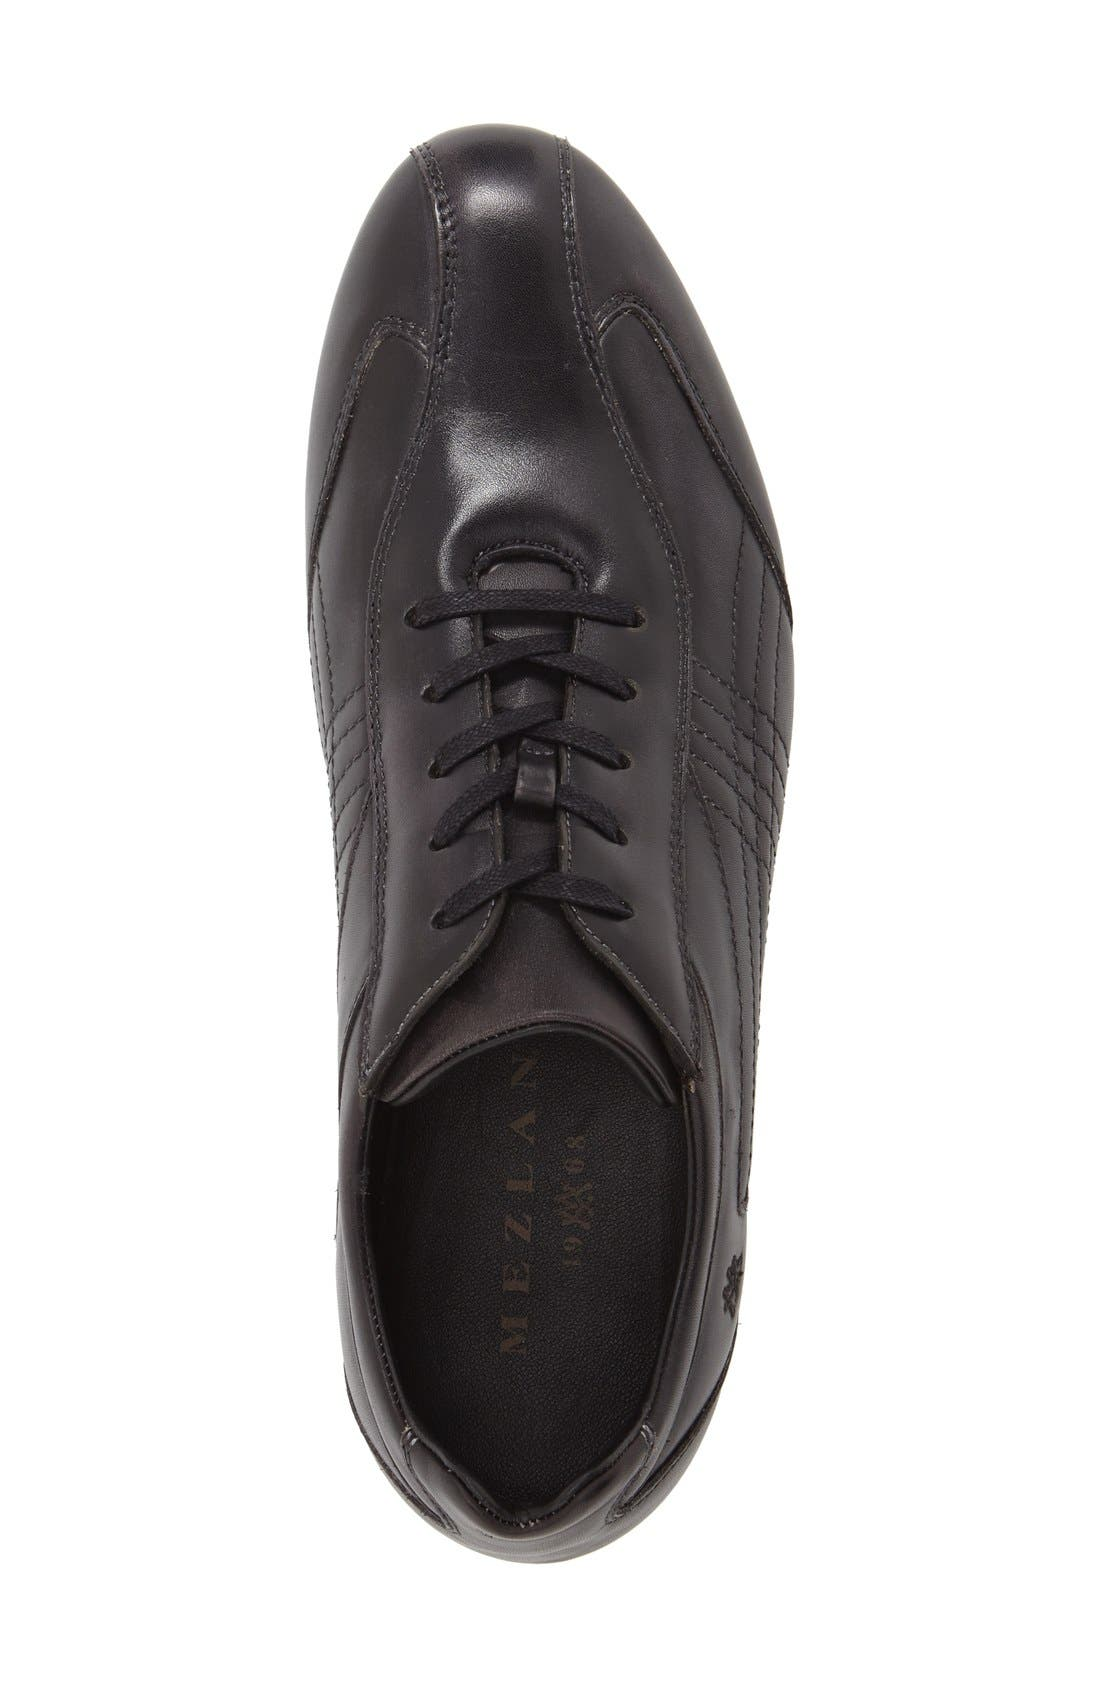 'Castelar' Lace-Up Sneaker,                             Alternate thumbnail 3, color,                             Graphite